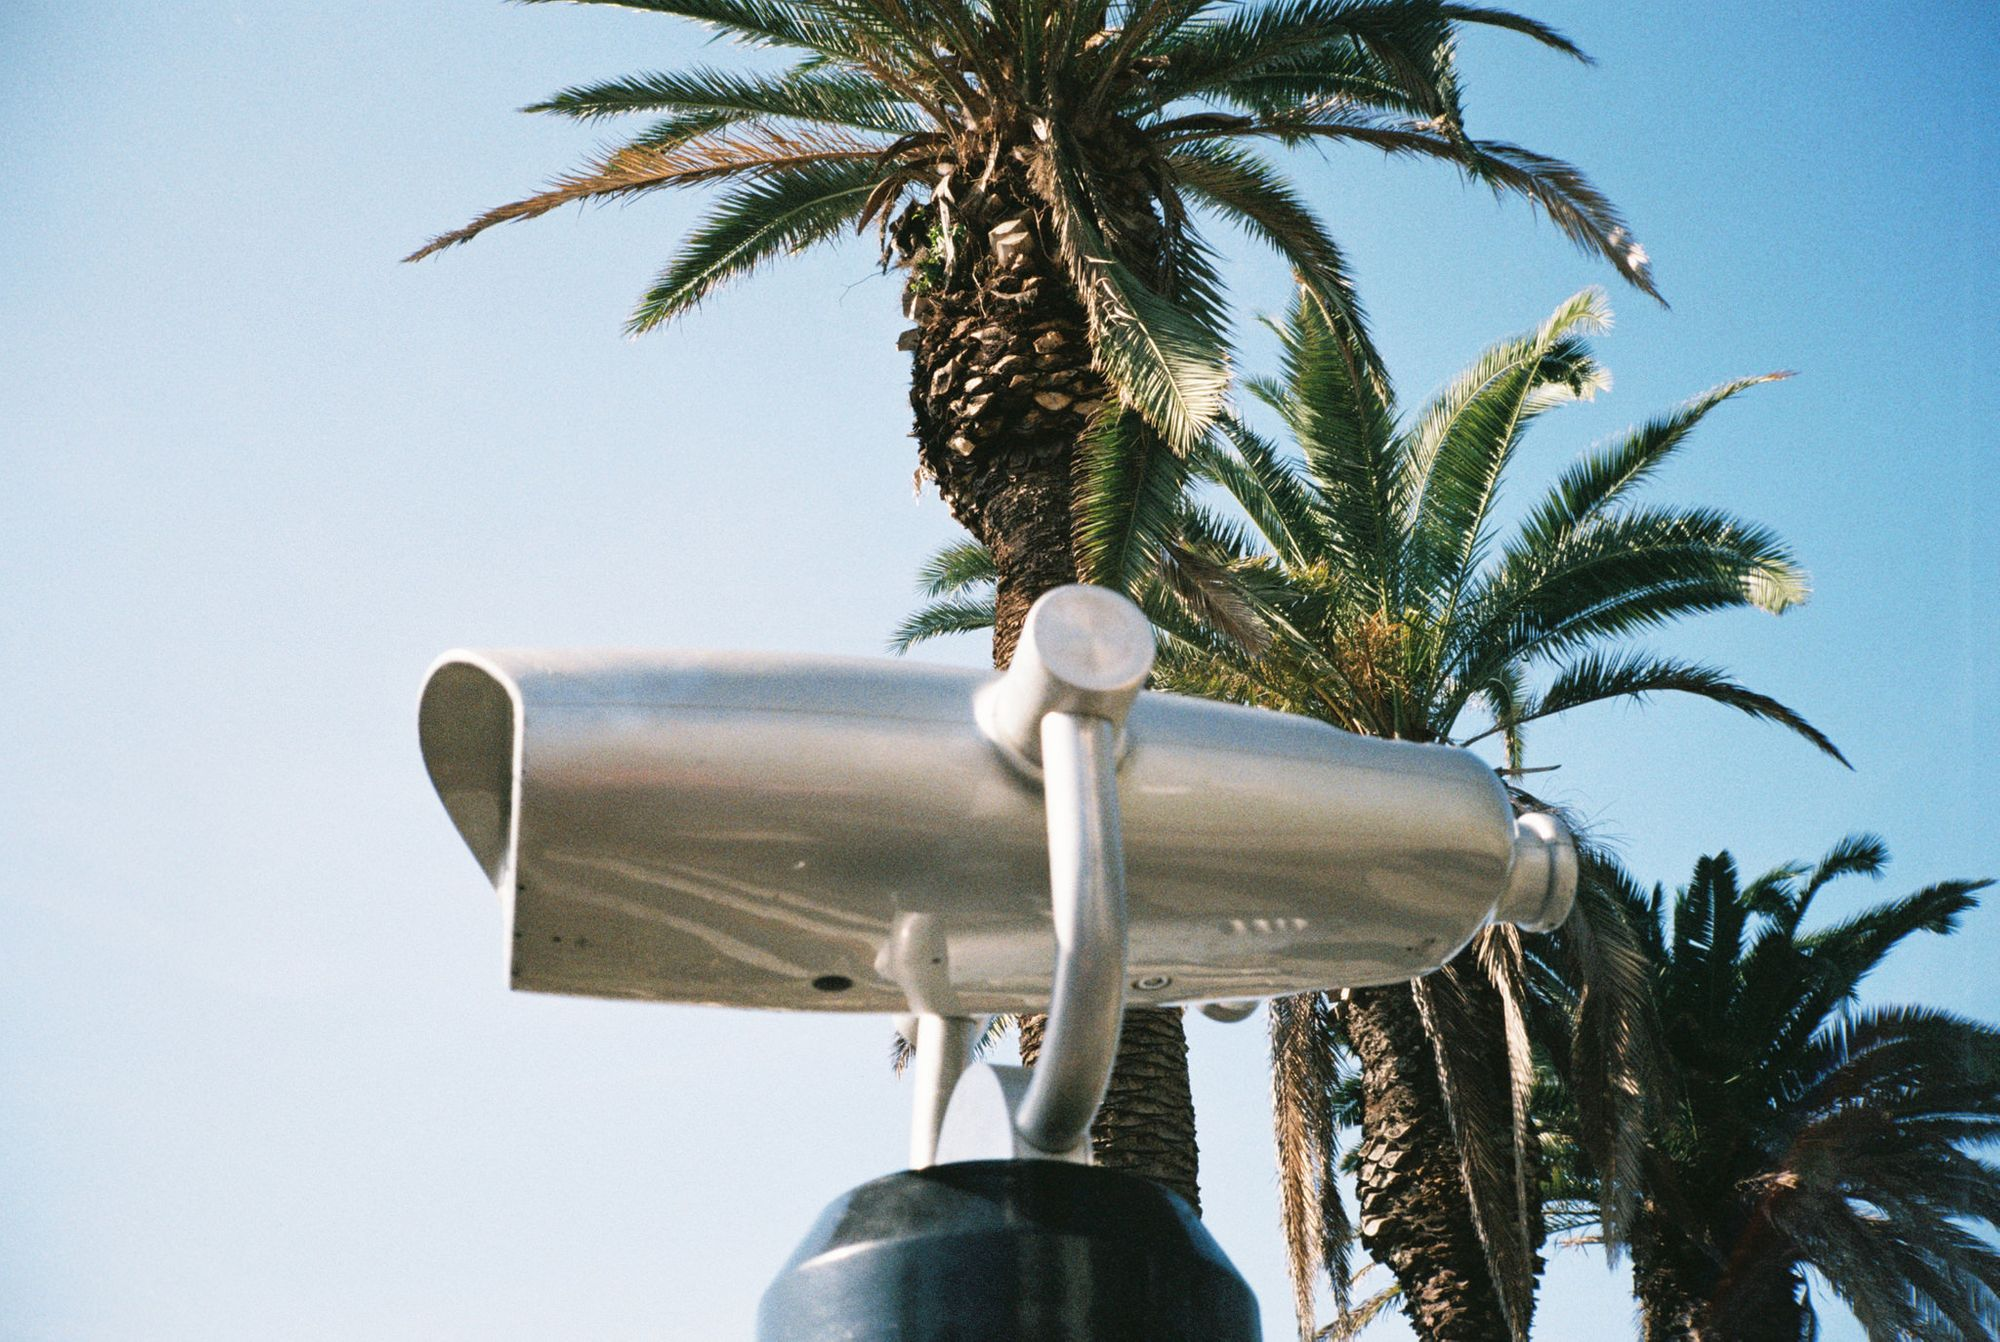 Wasting Film in Santa Monica With the Contax T2